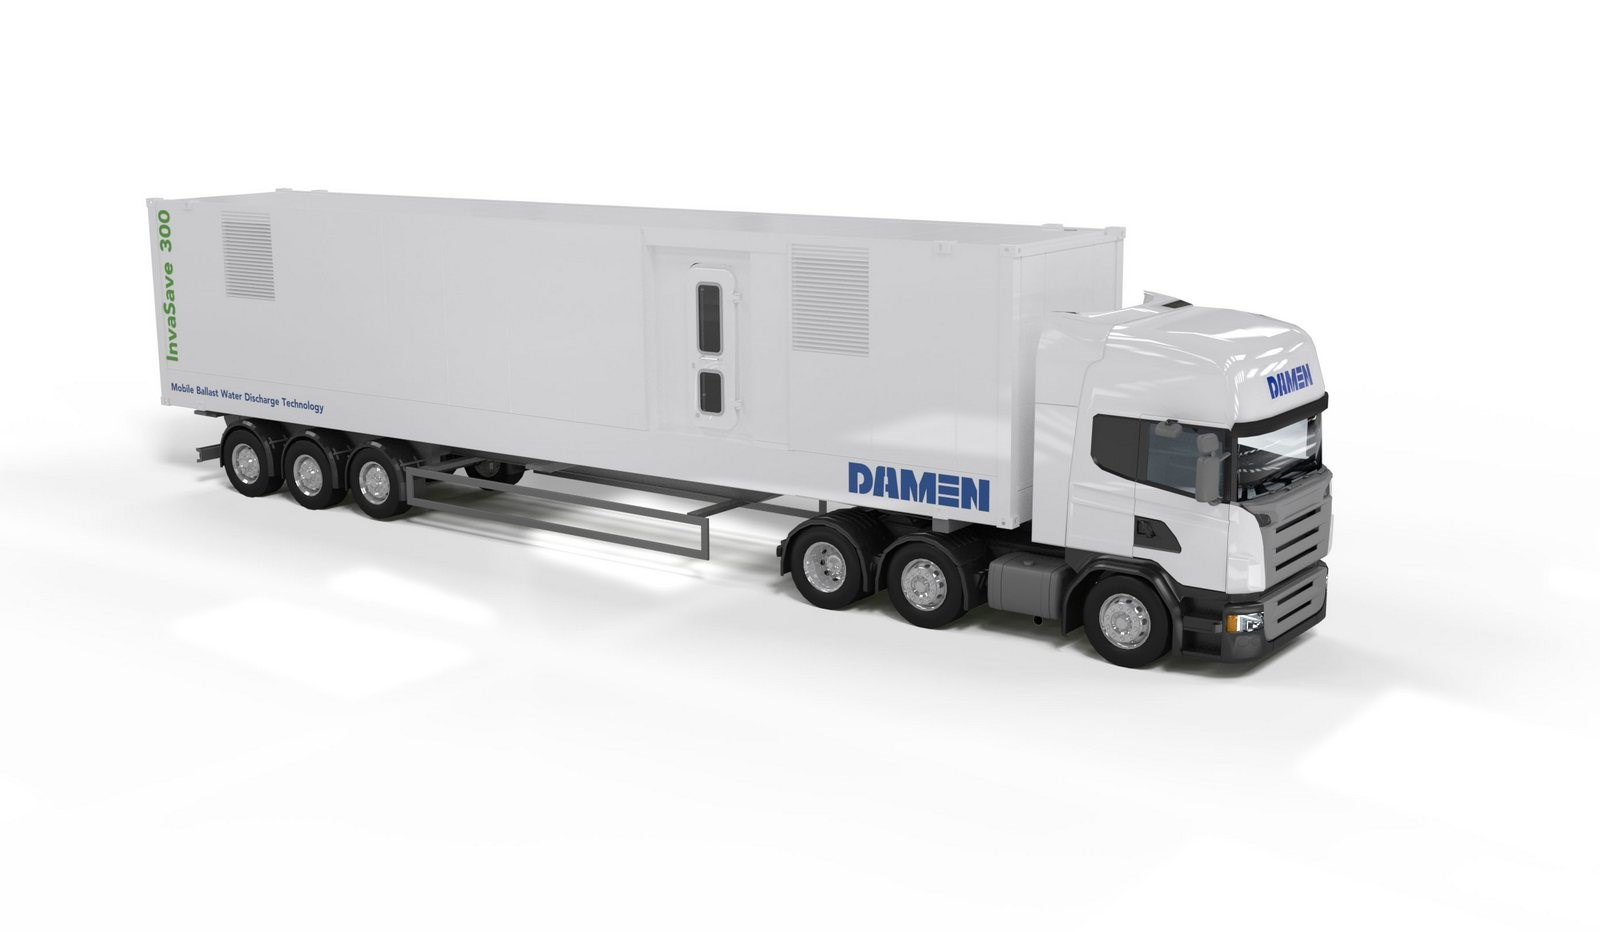 Damen can deliver the system as a self-sufficient mobile container